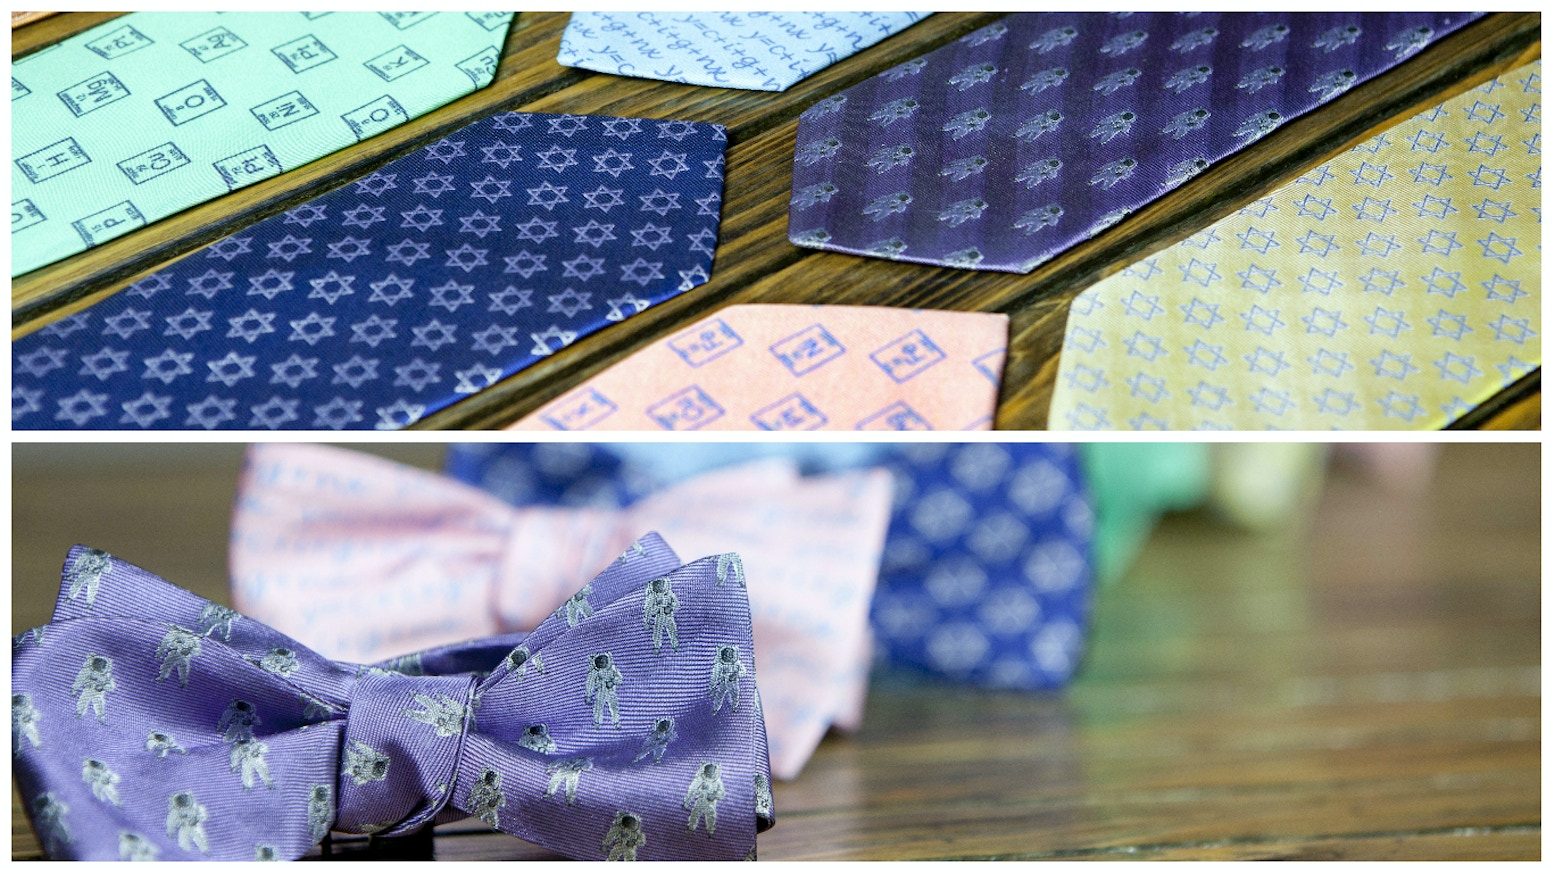 Small batch ties & bow ties to celebrate the people, places, and ideas that inspire you. Designed in Maryland. Handcrafted in Brooklyn.